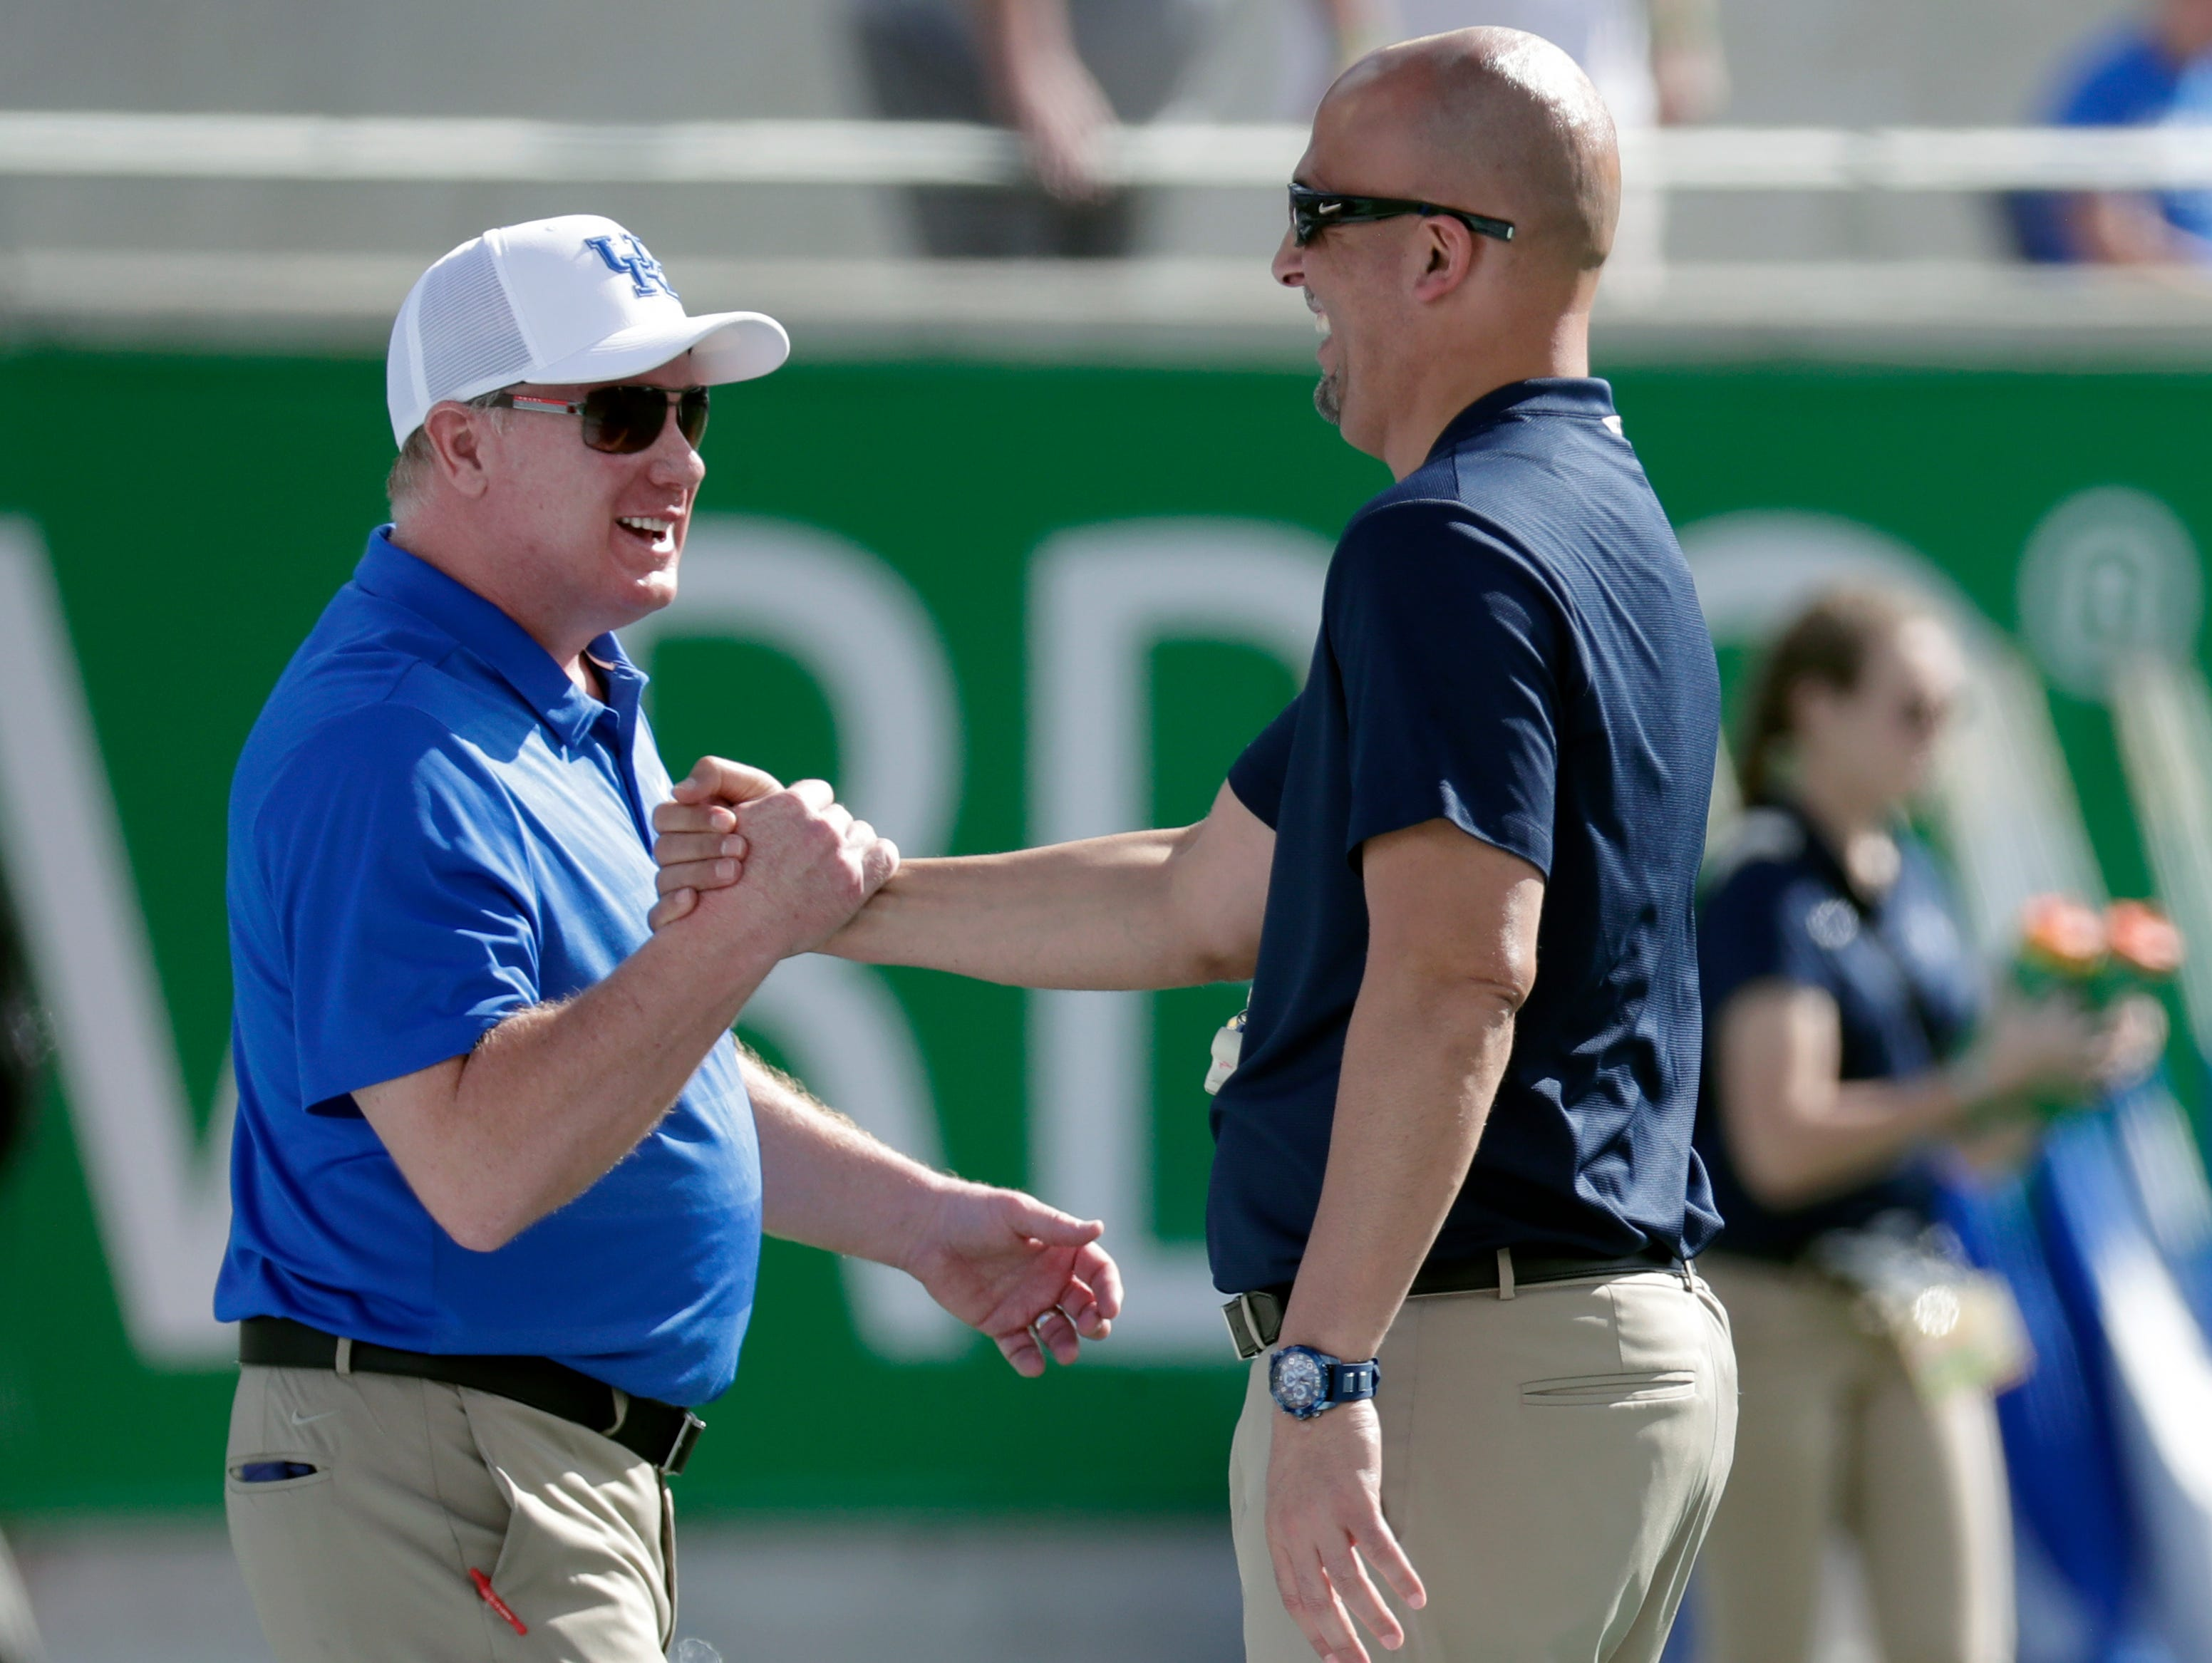 Kentucky head coach Mark Stoops, left, greets Penn State head coach James Franklin at midfield before during the start of the Citrus Bowl NCAA college football game, Tuesday, Jan. 1, 2019, in Orlando, Fla. (AP Photo/John Raoux)